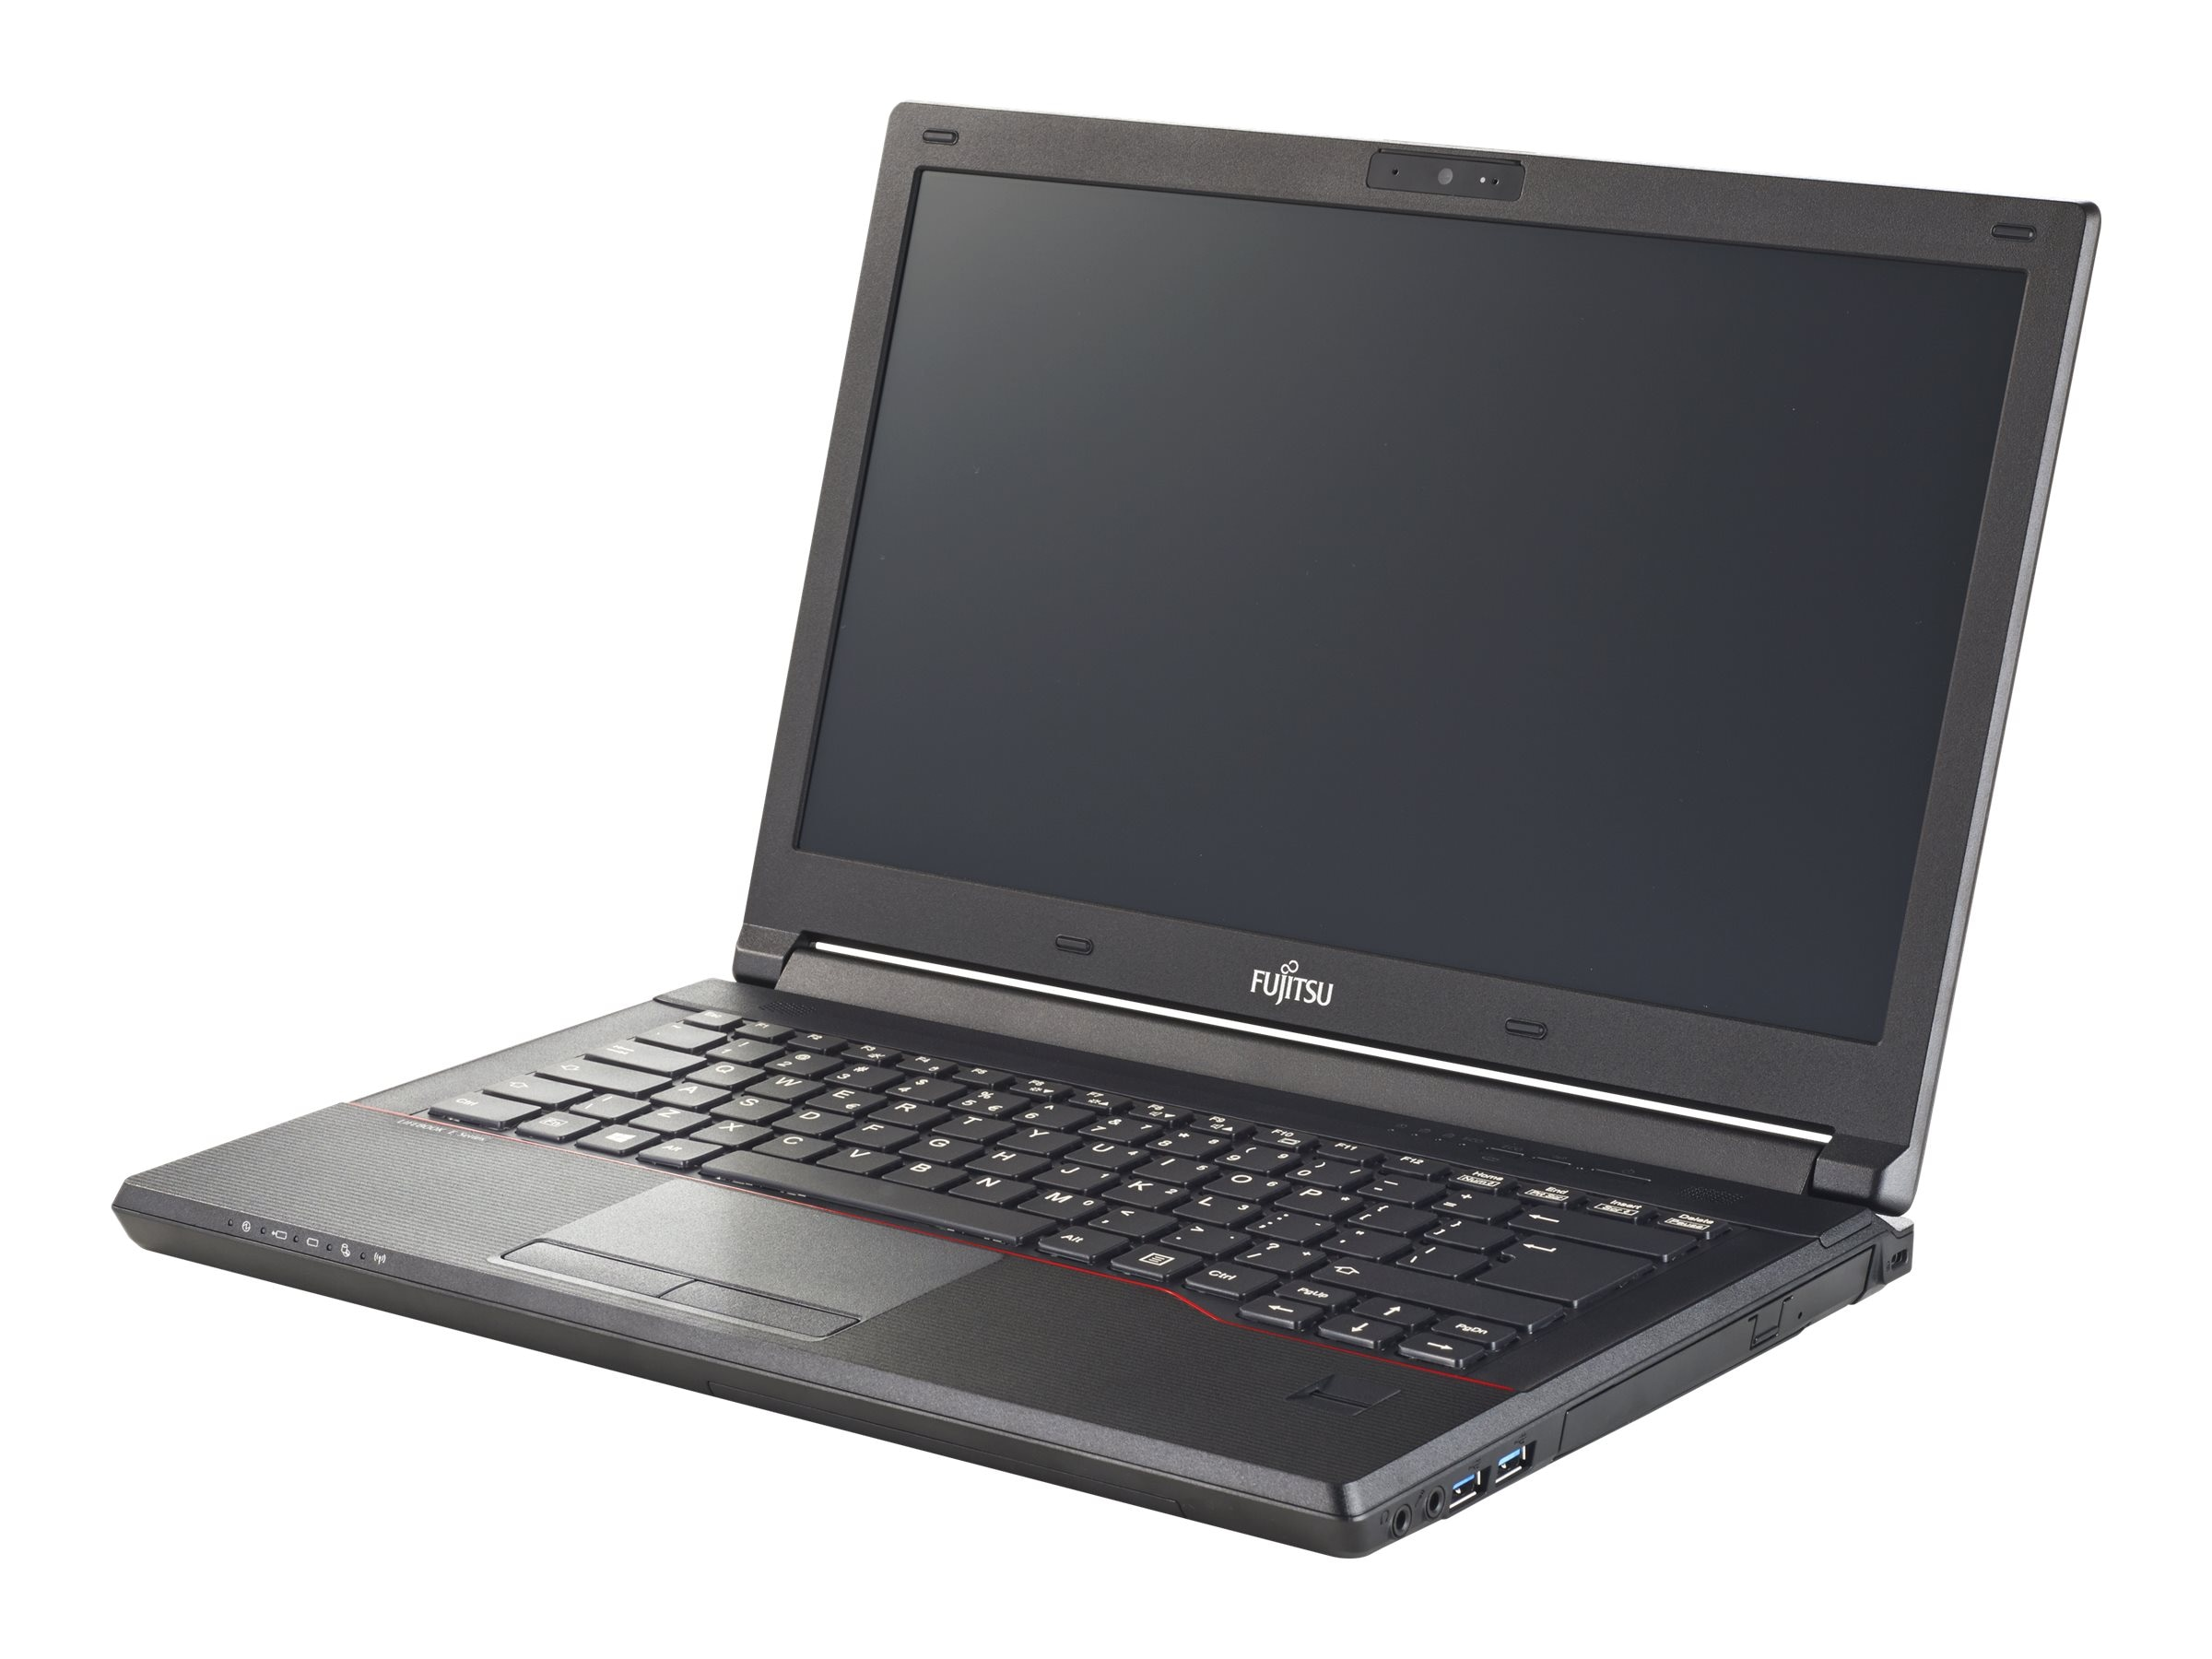 Fujitsu LifeBook E546 2.3GHz Core i5 14in display, SPFC-E546-001